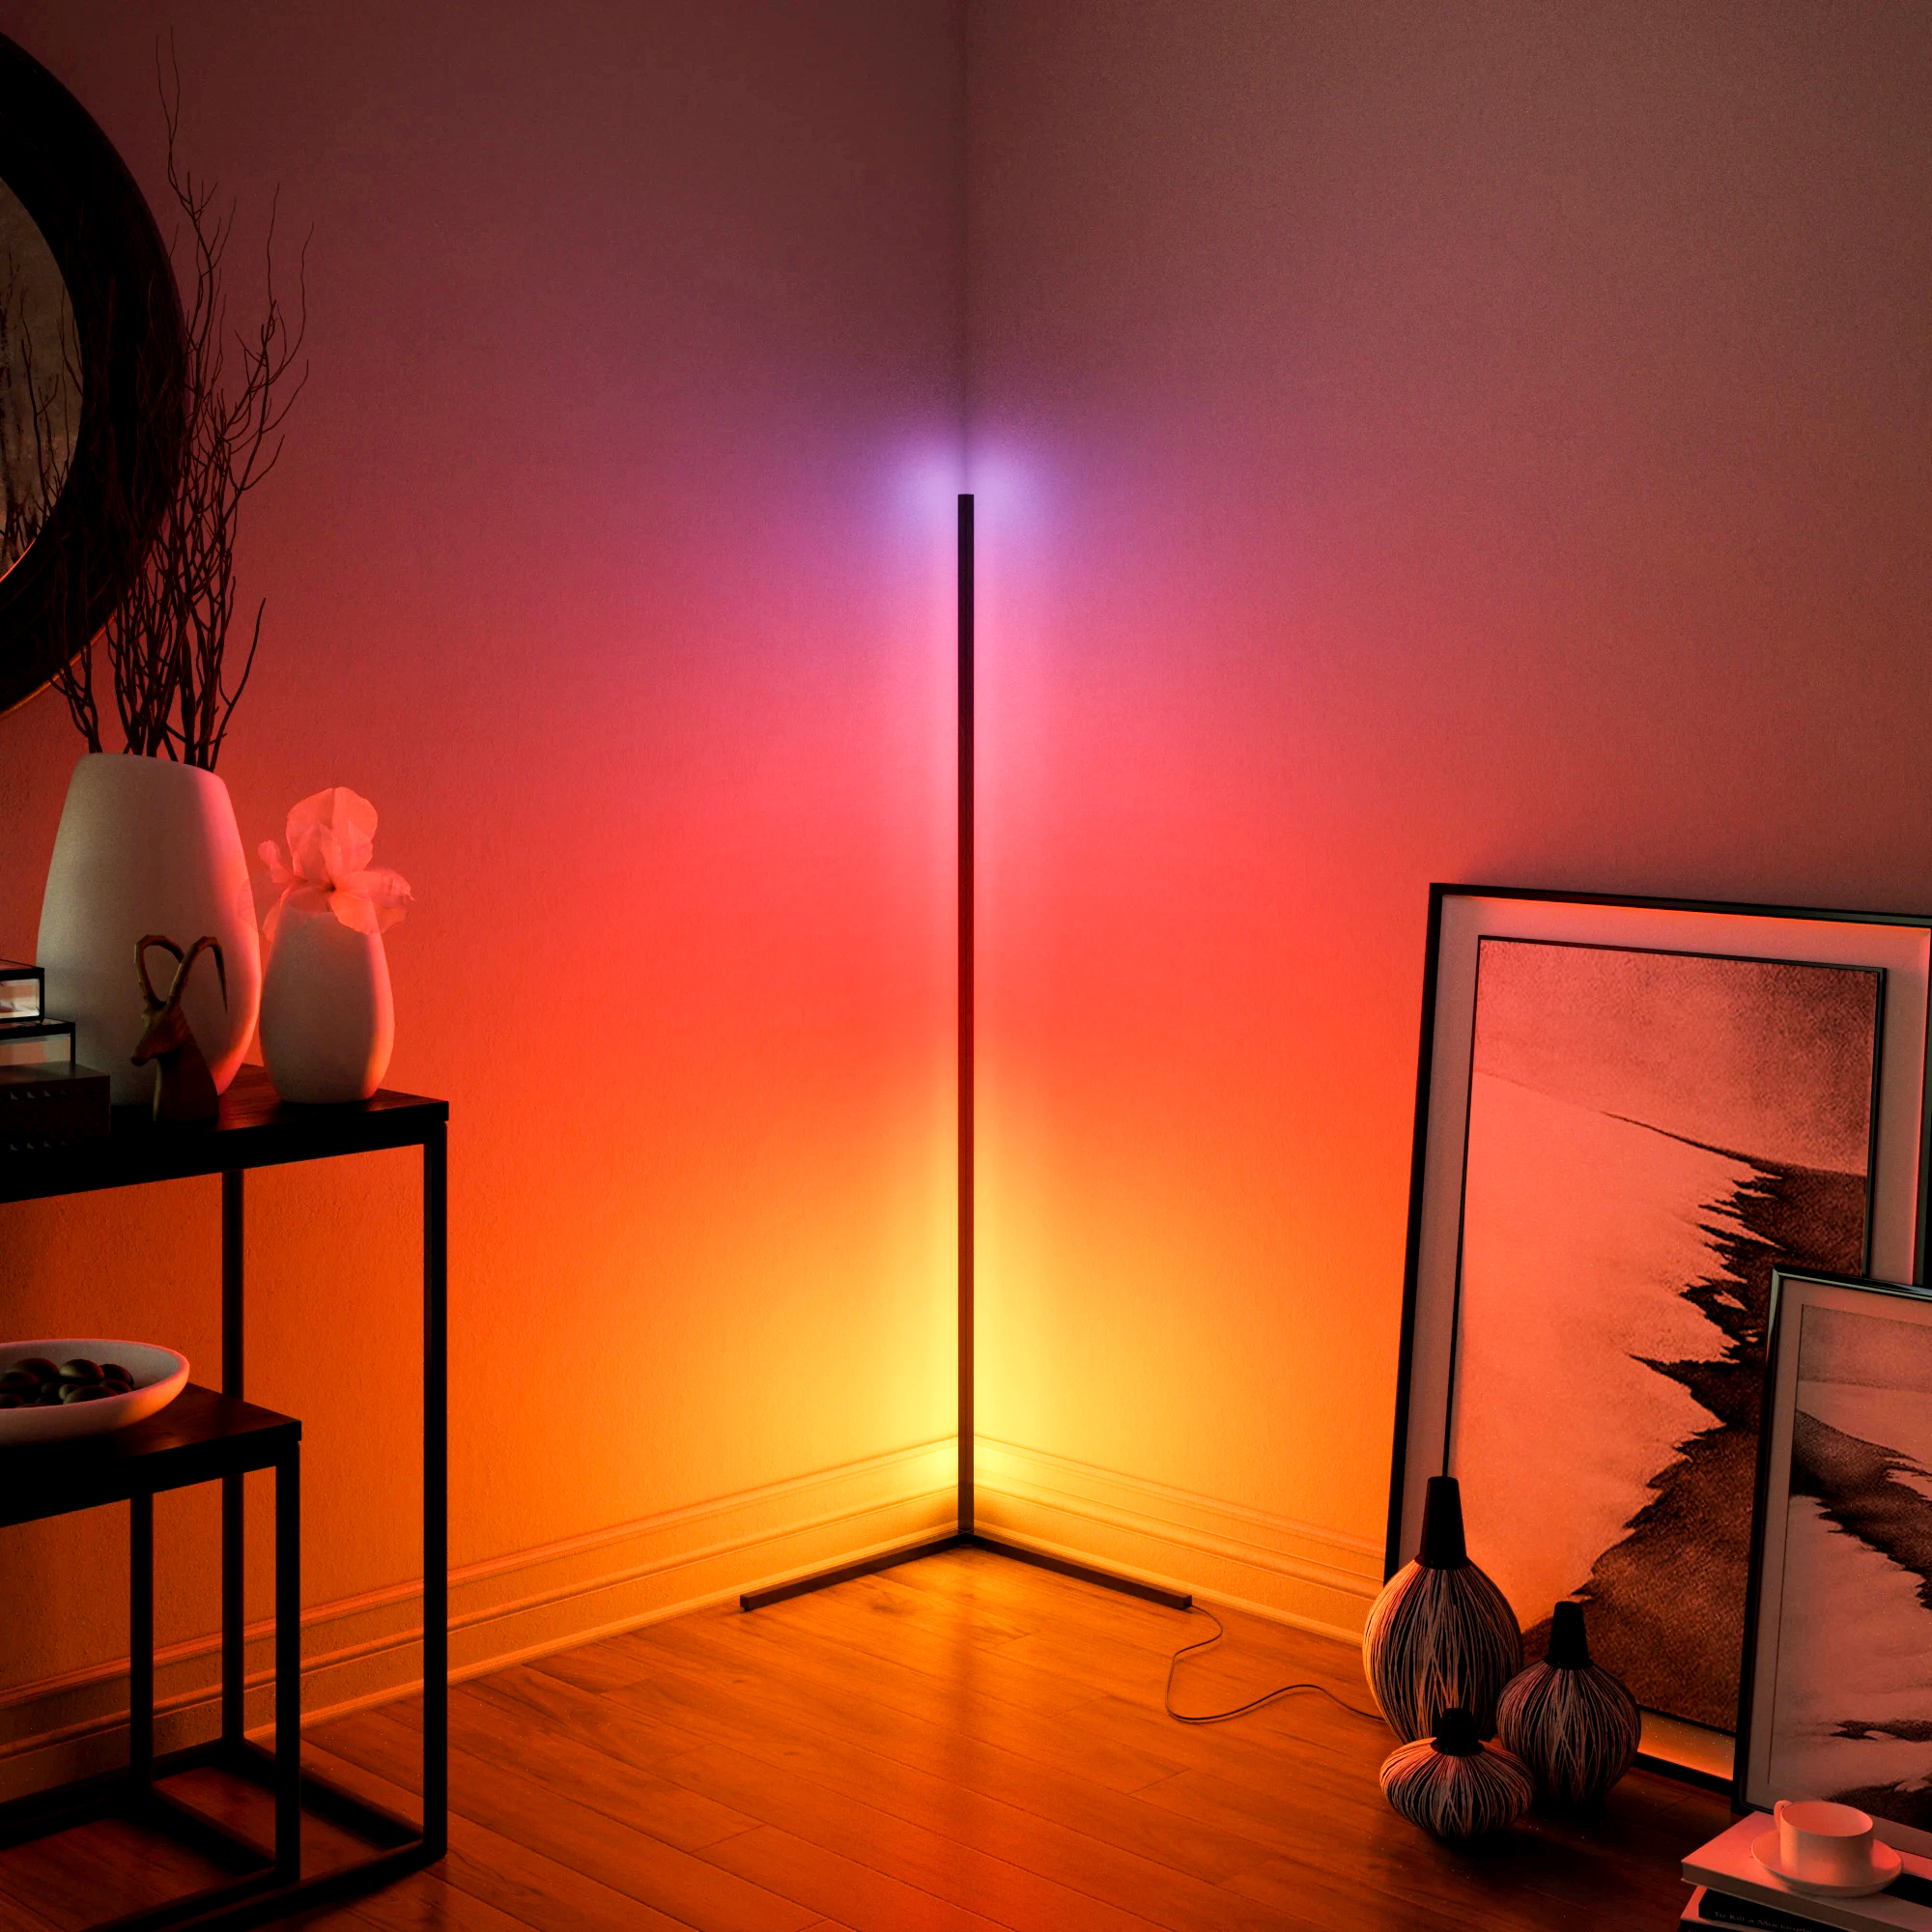 Modern Corner Floor Lamps Floor Lights Interior Atmosphere Lamp Colourful Bedroom Living Room Decoration Lighting Standing Lamp